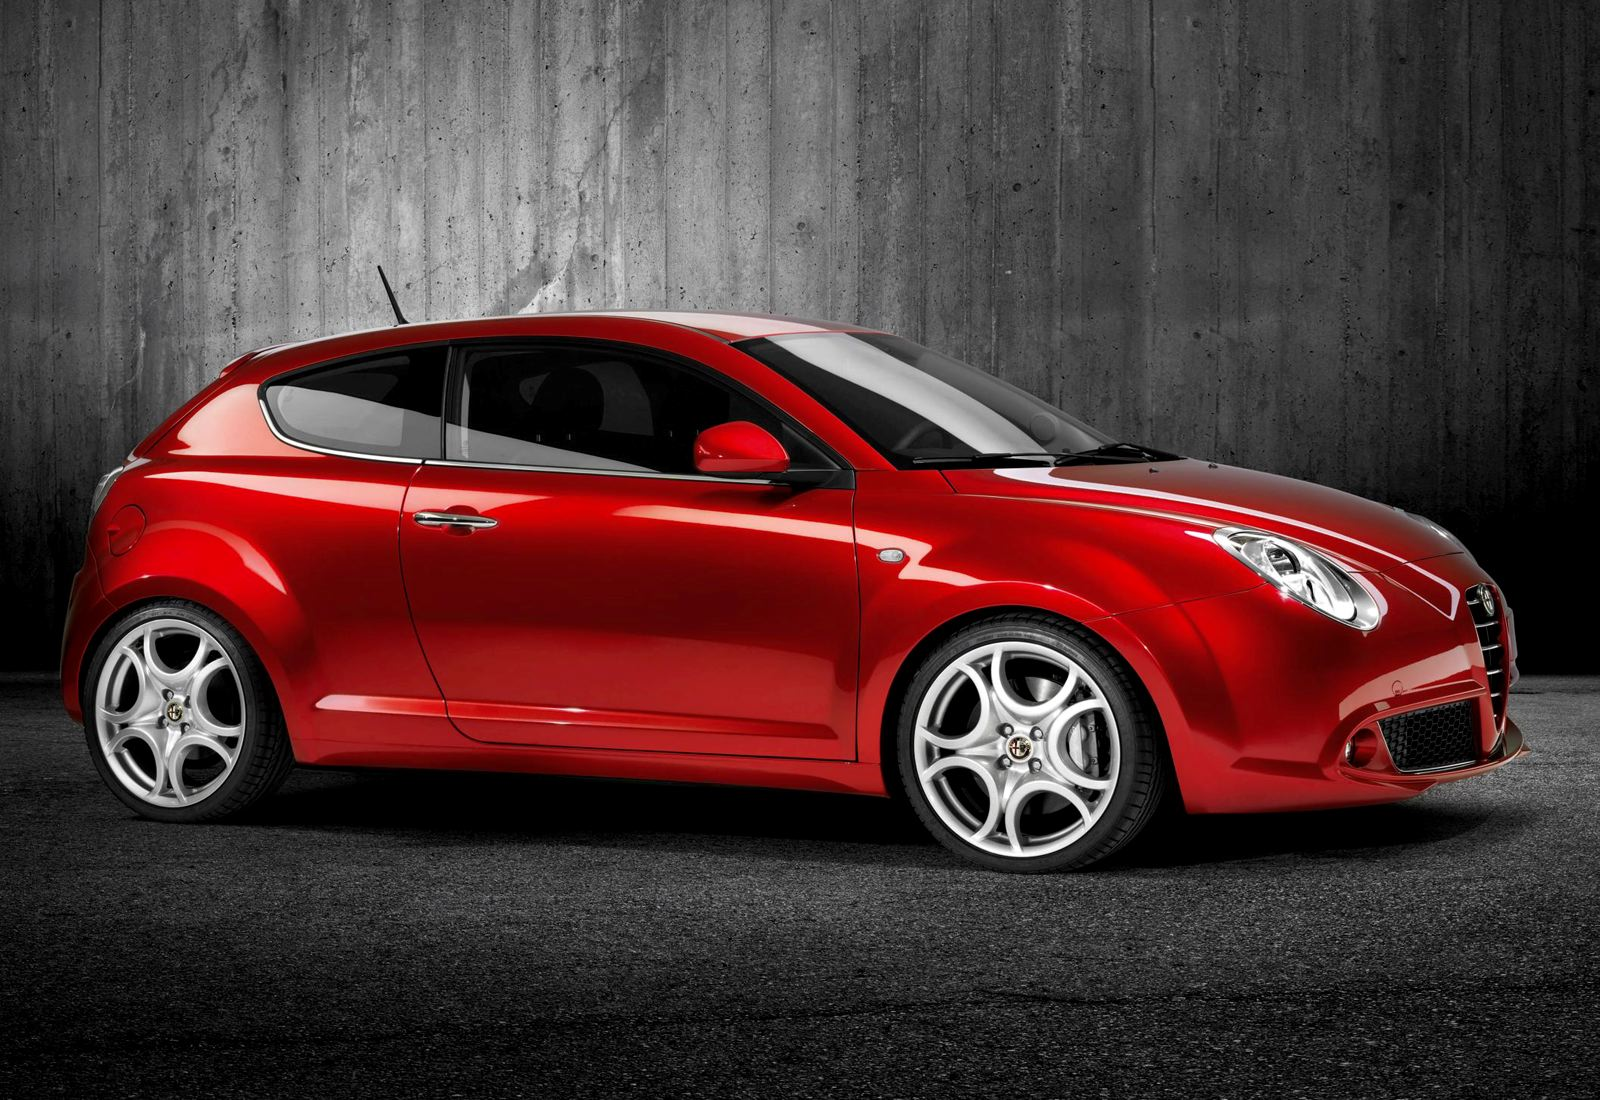 Alfa romeo mito photo - 2